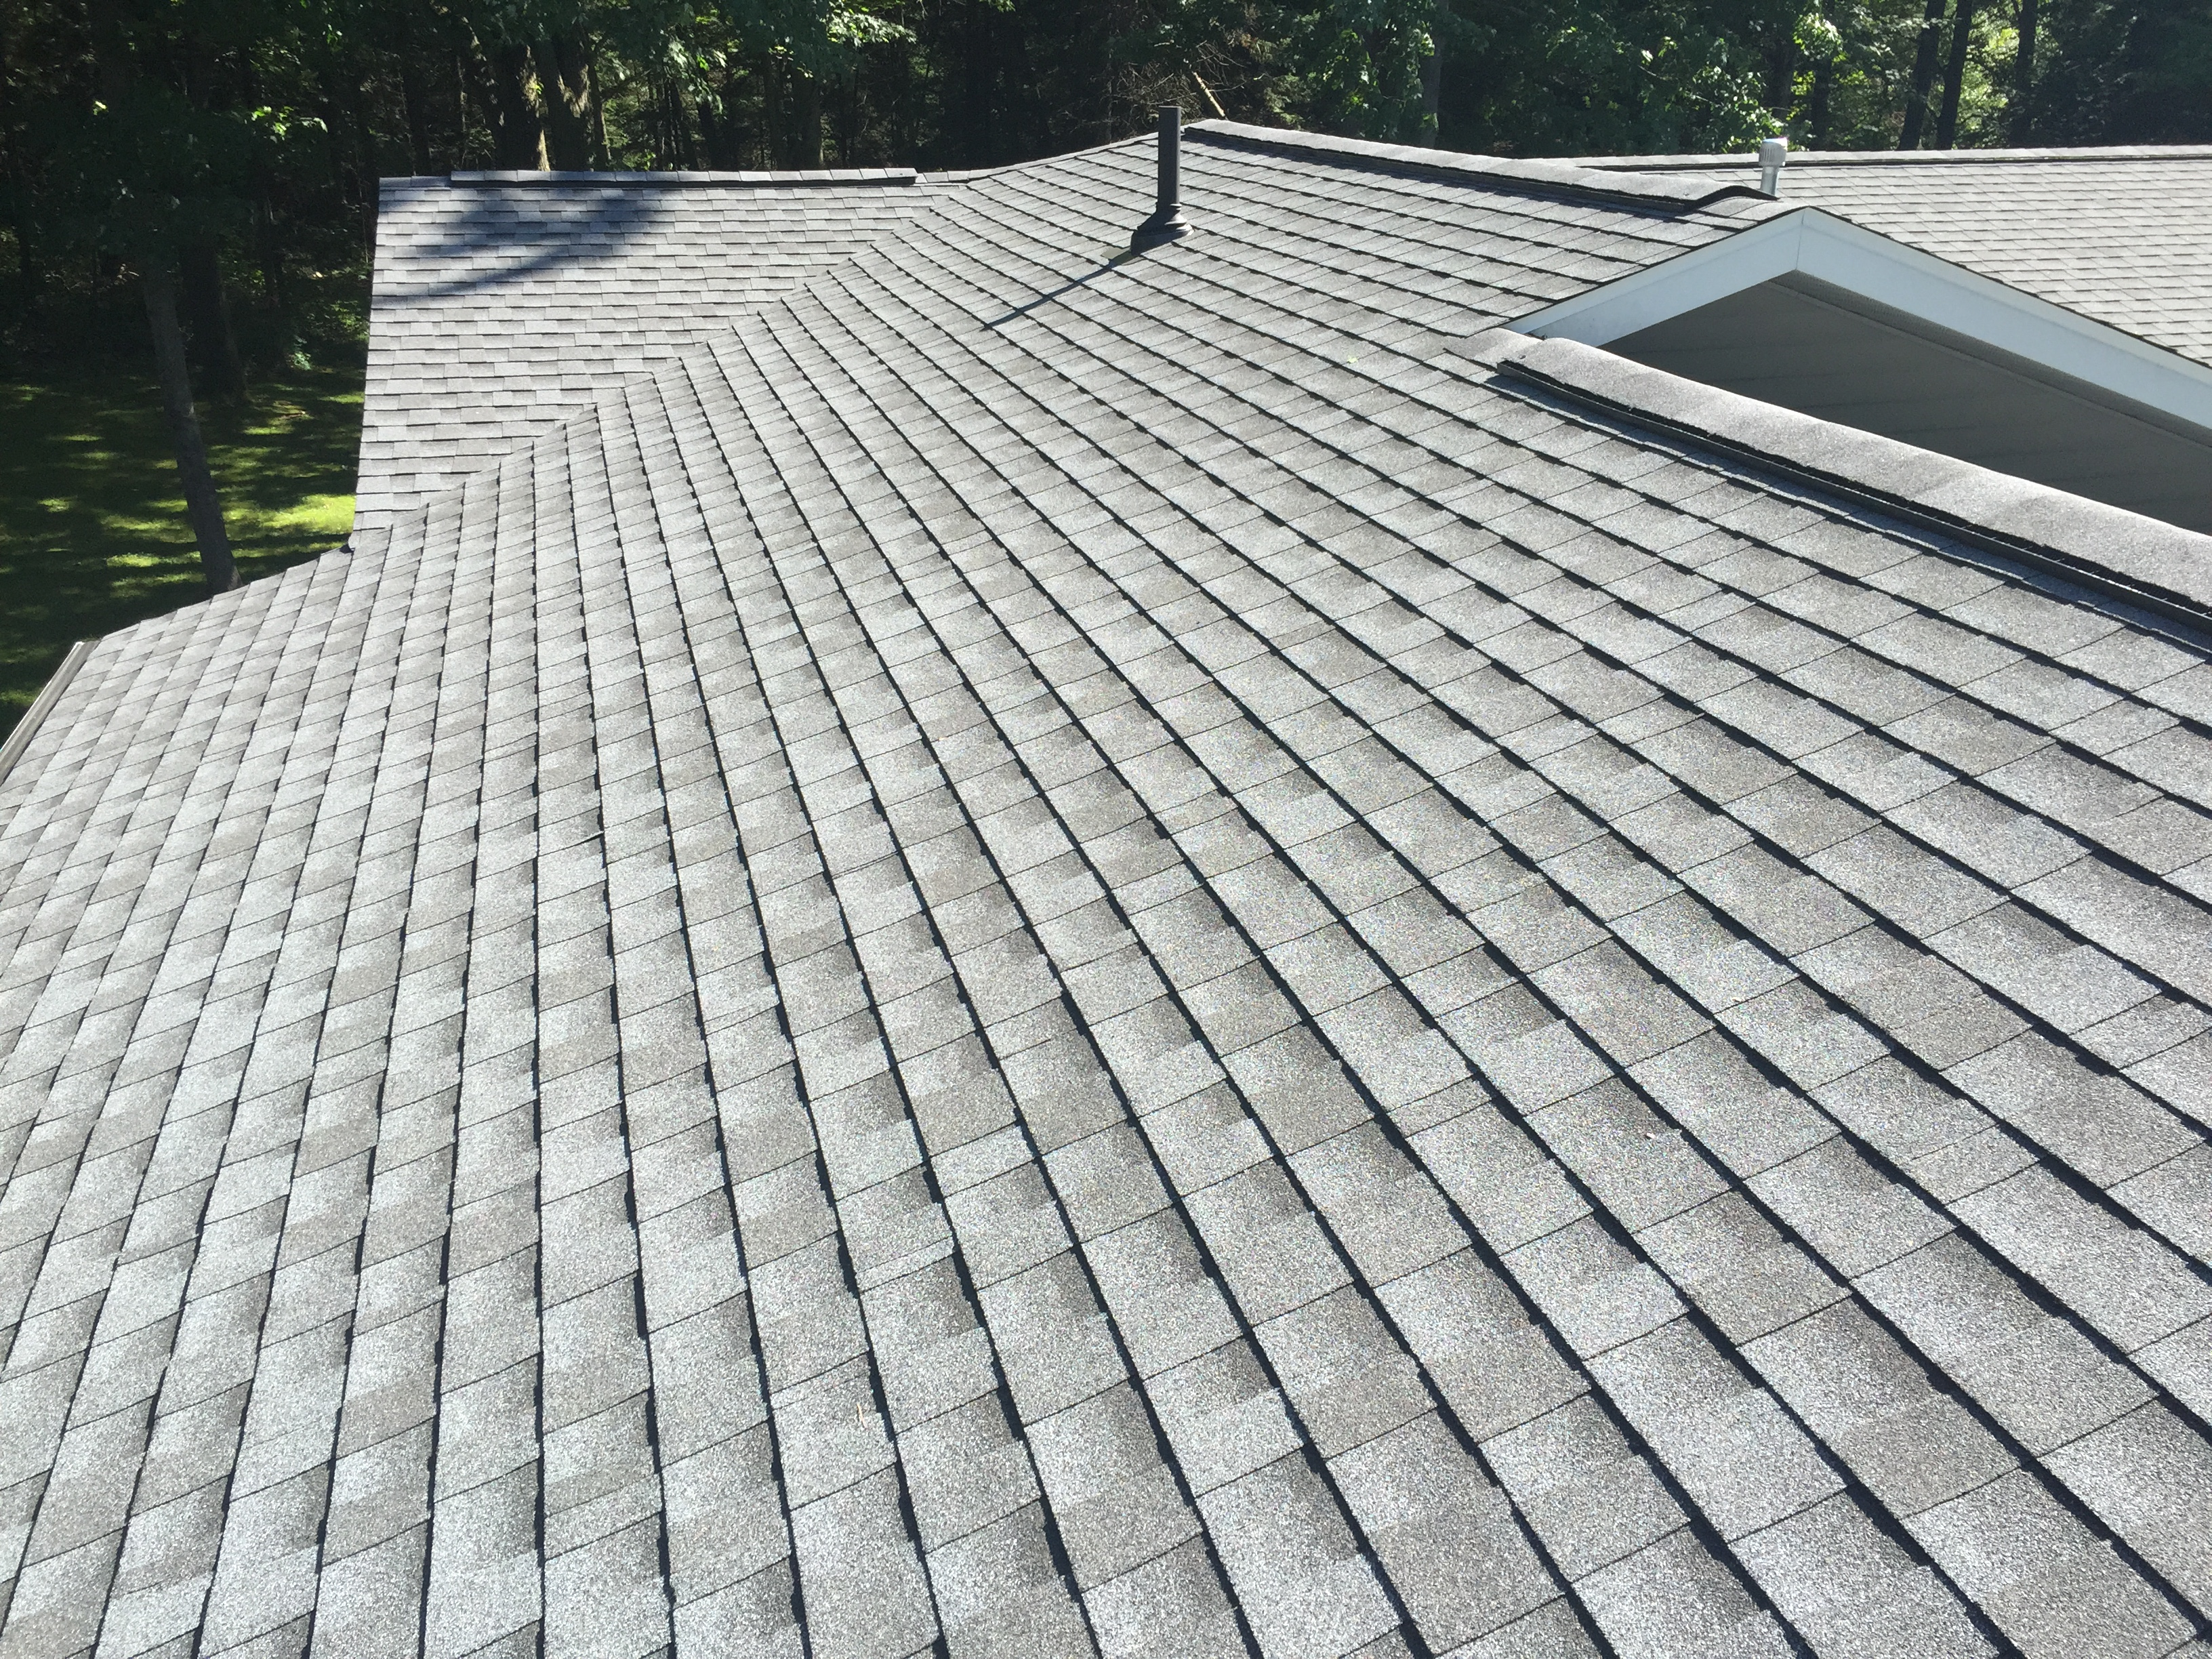 Asphalt Shingle Roofing Merrill